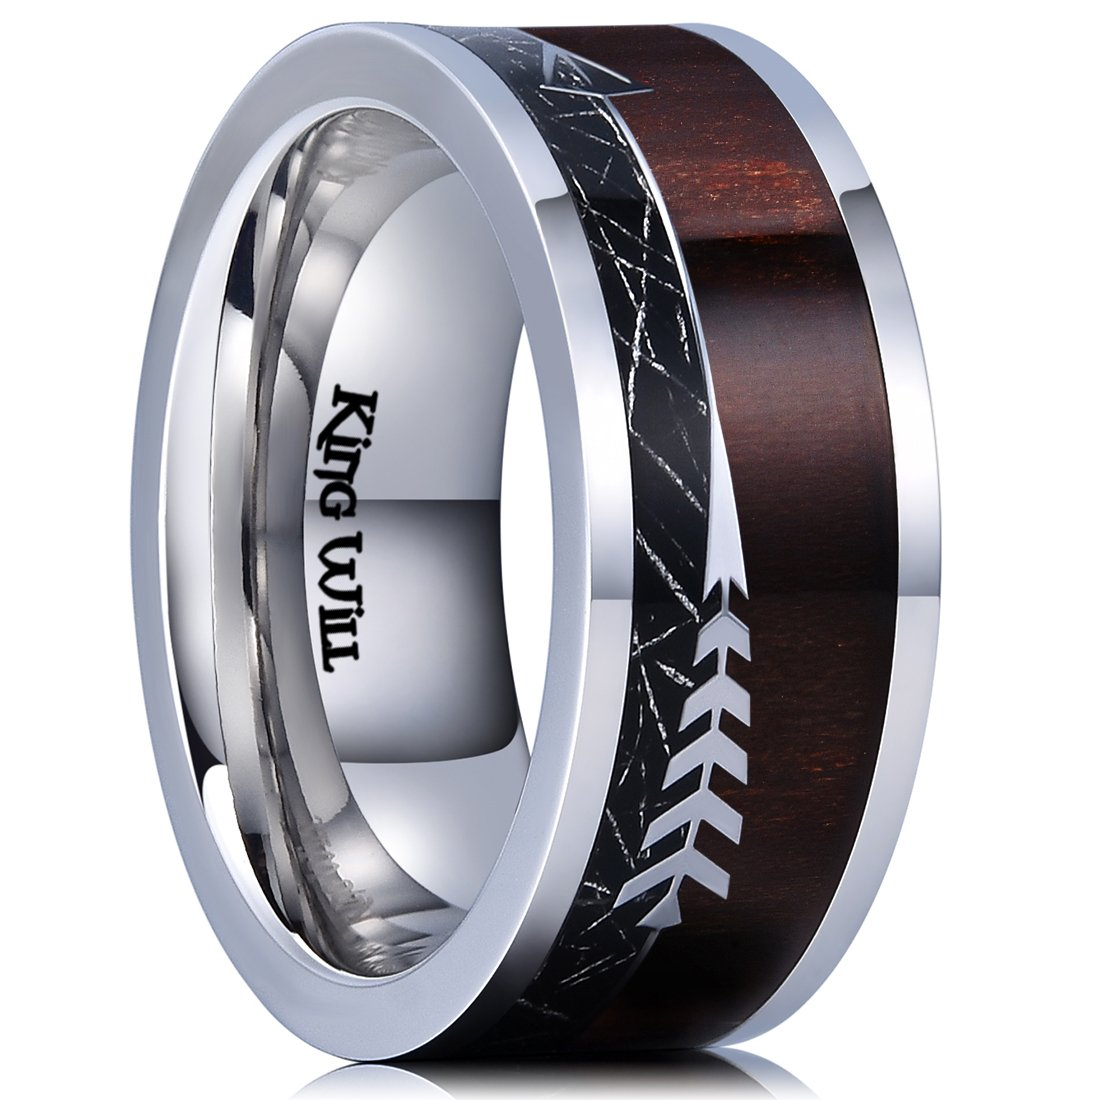 King Will Nature 8mm Real Wood Inlay Titanium Wedding Ring Imitated Meteorite Comfort Fit OY-TRM022